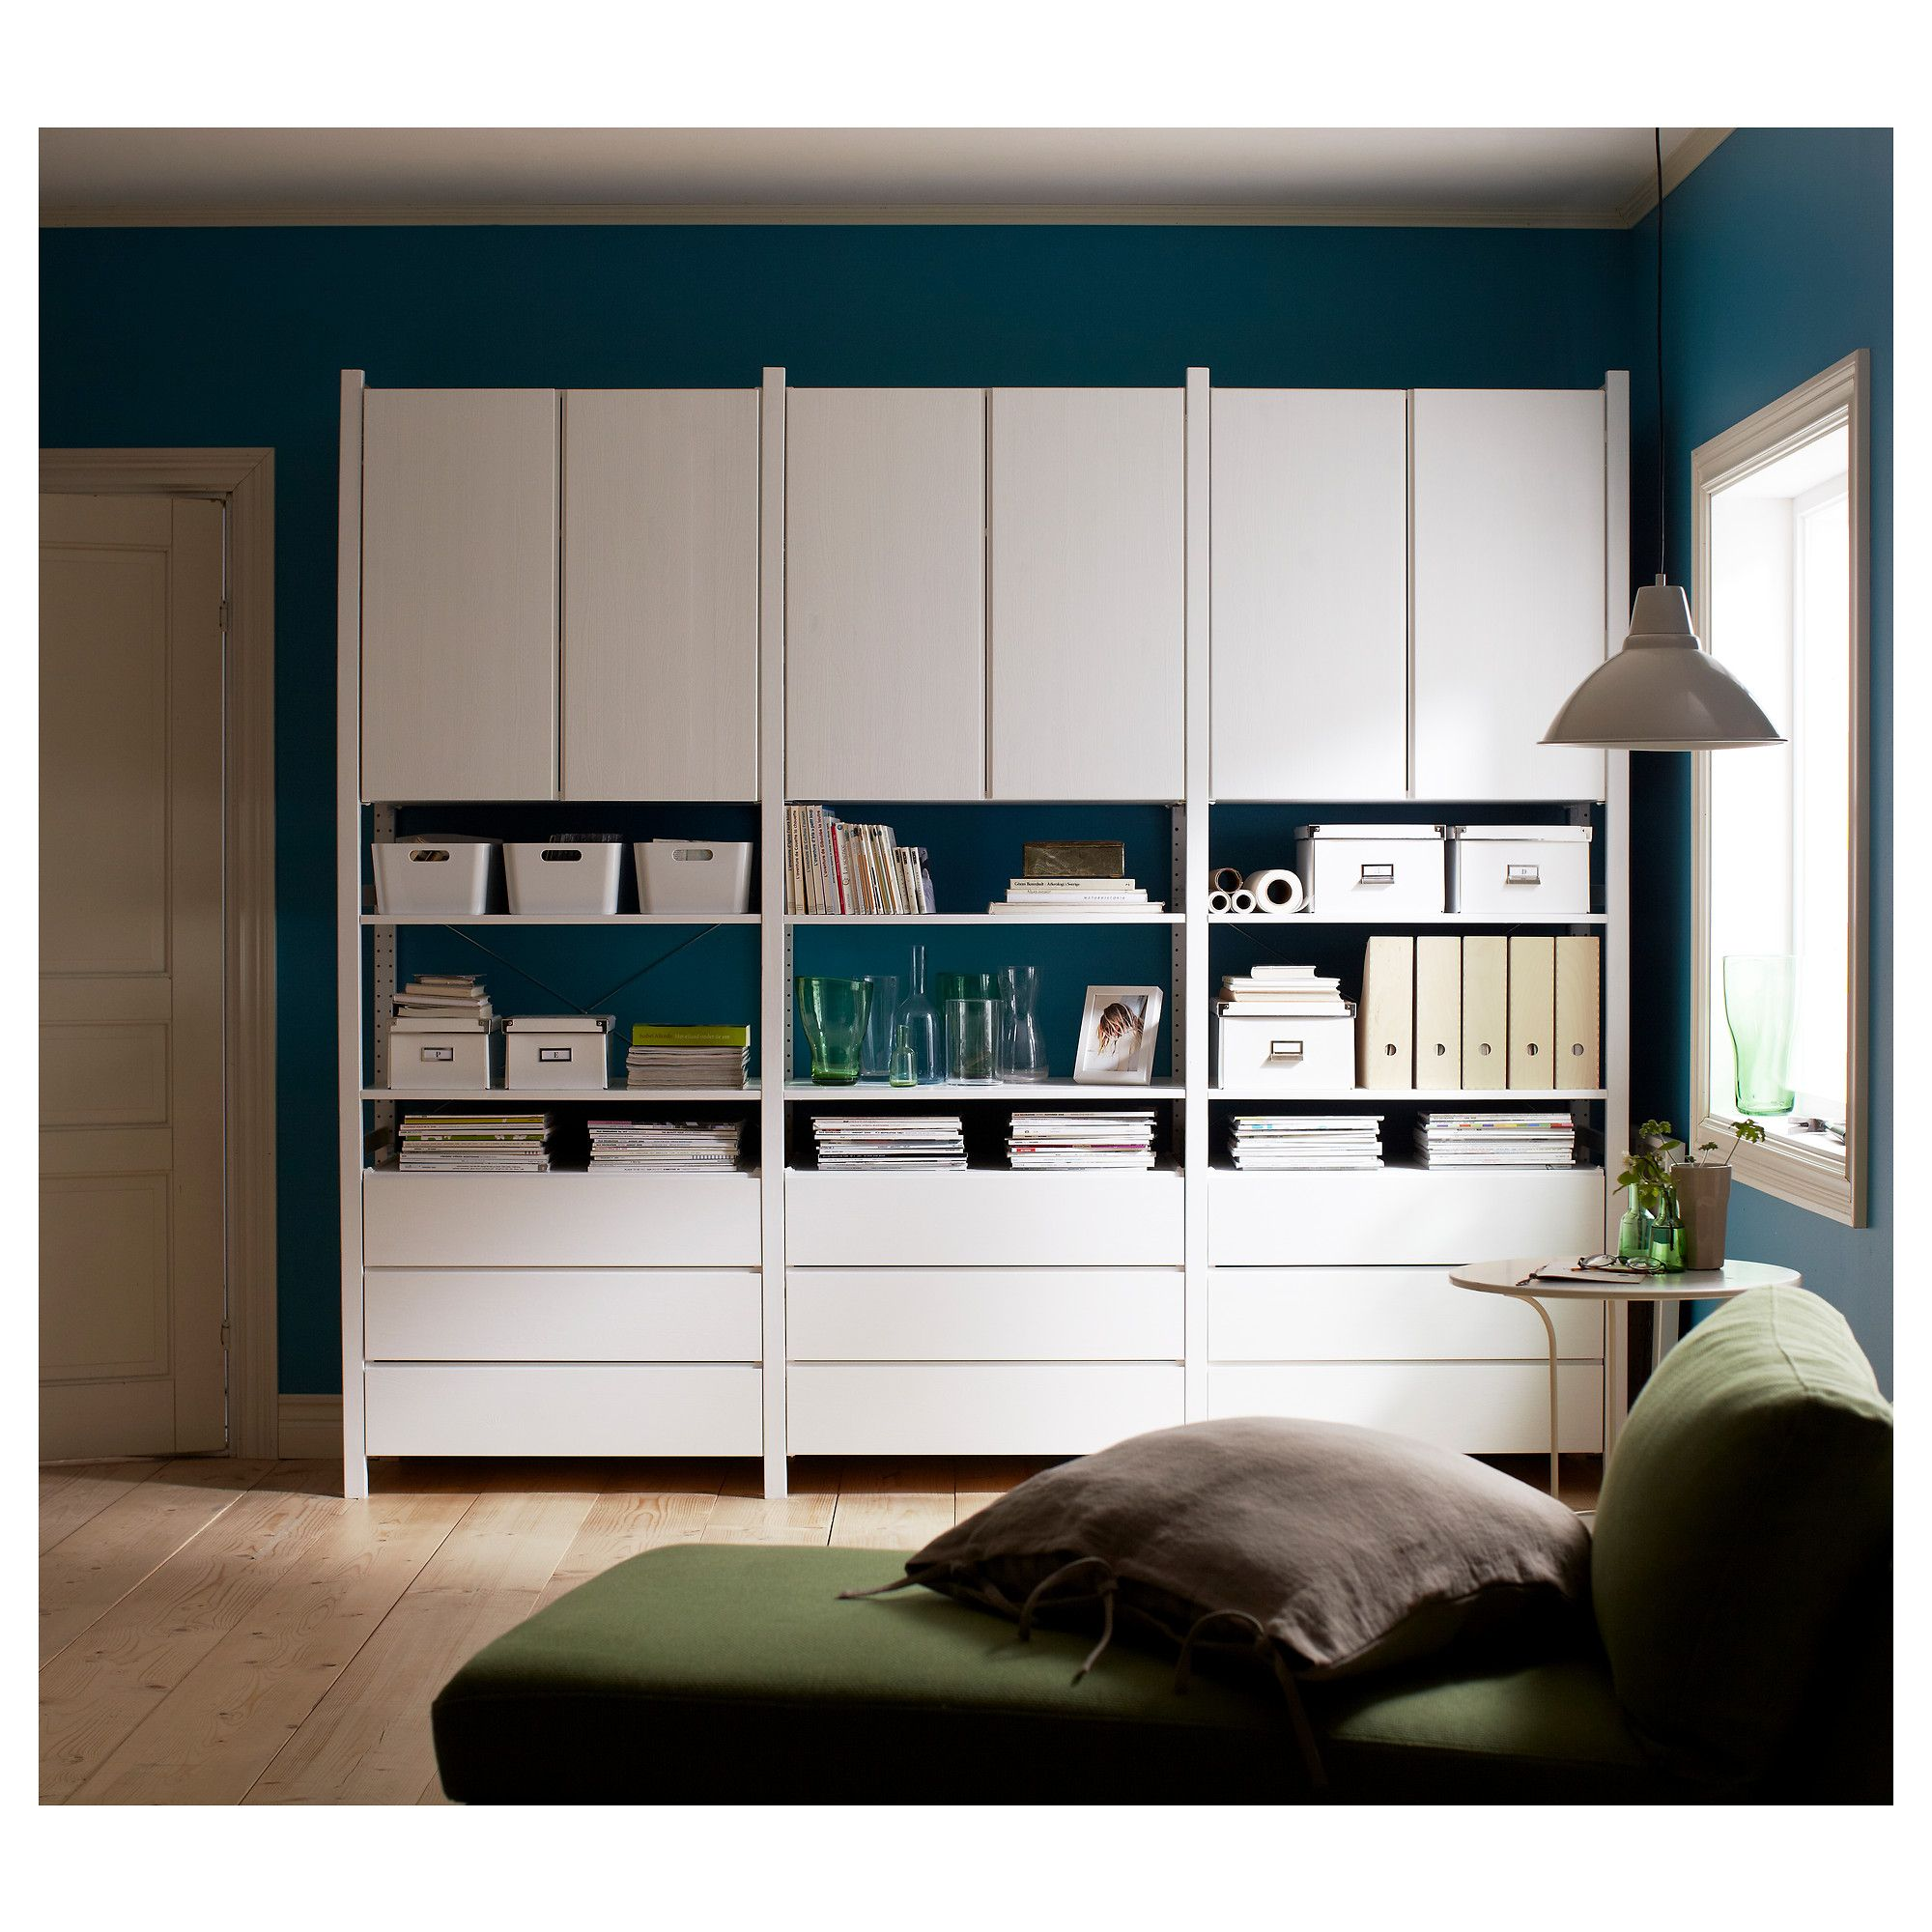 Ikea Ivar Cabinets And Drawers Painted White And Arranged Into A Stylish Storage  Unit. | Wohnen | Pinterest | Drawers, Storage And Ikea Hack